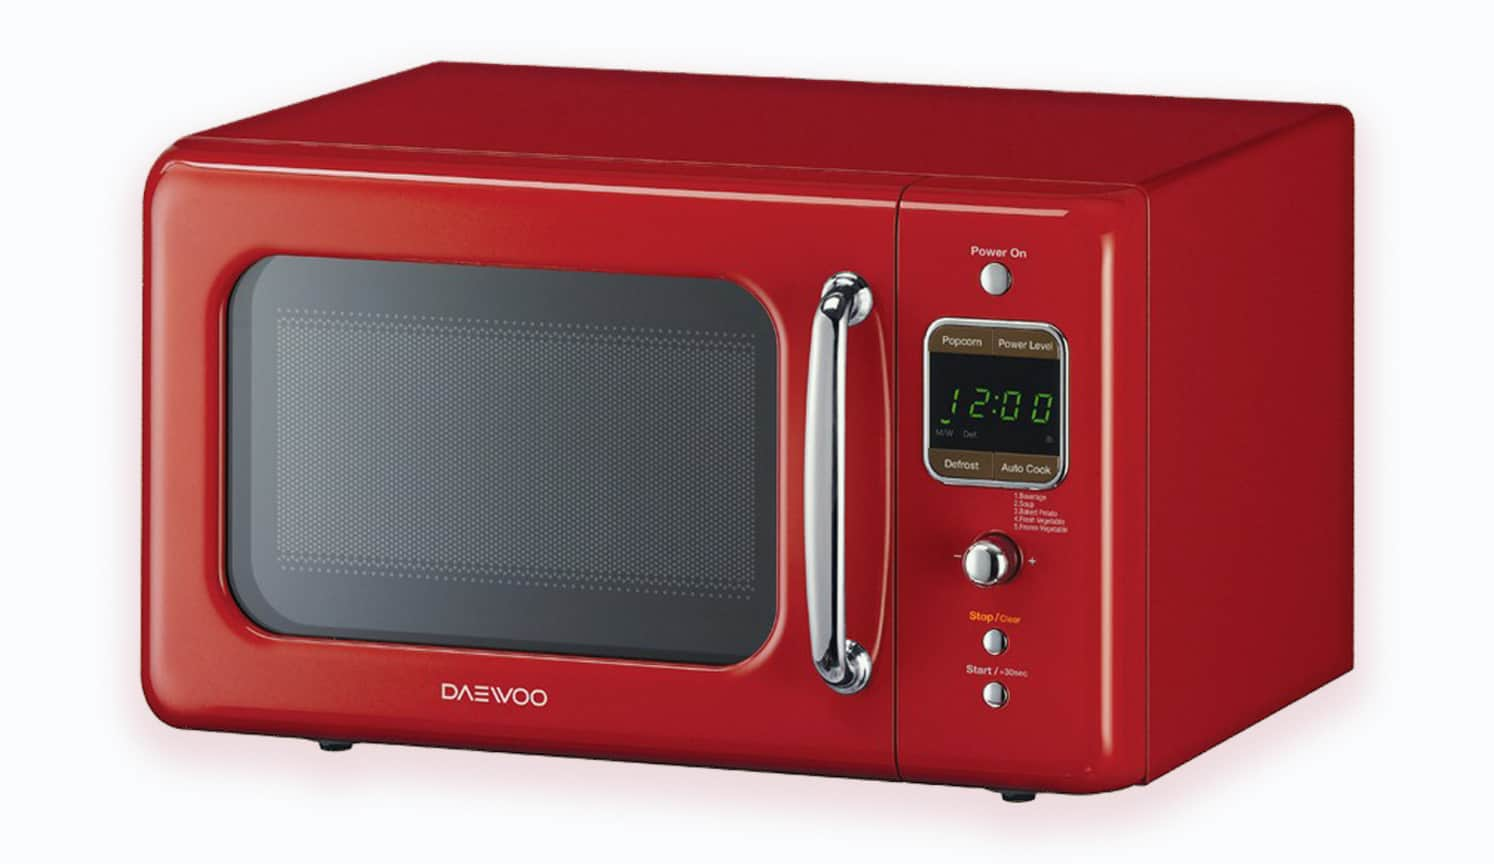 Stainless Steel Countertop Microwave as the third related product of the Best Countertop Microwave